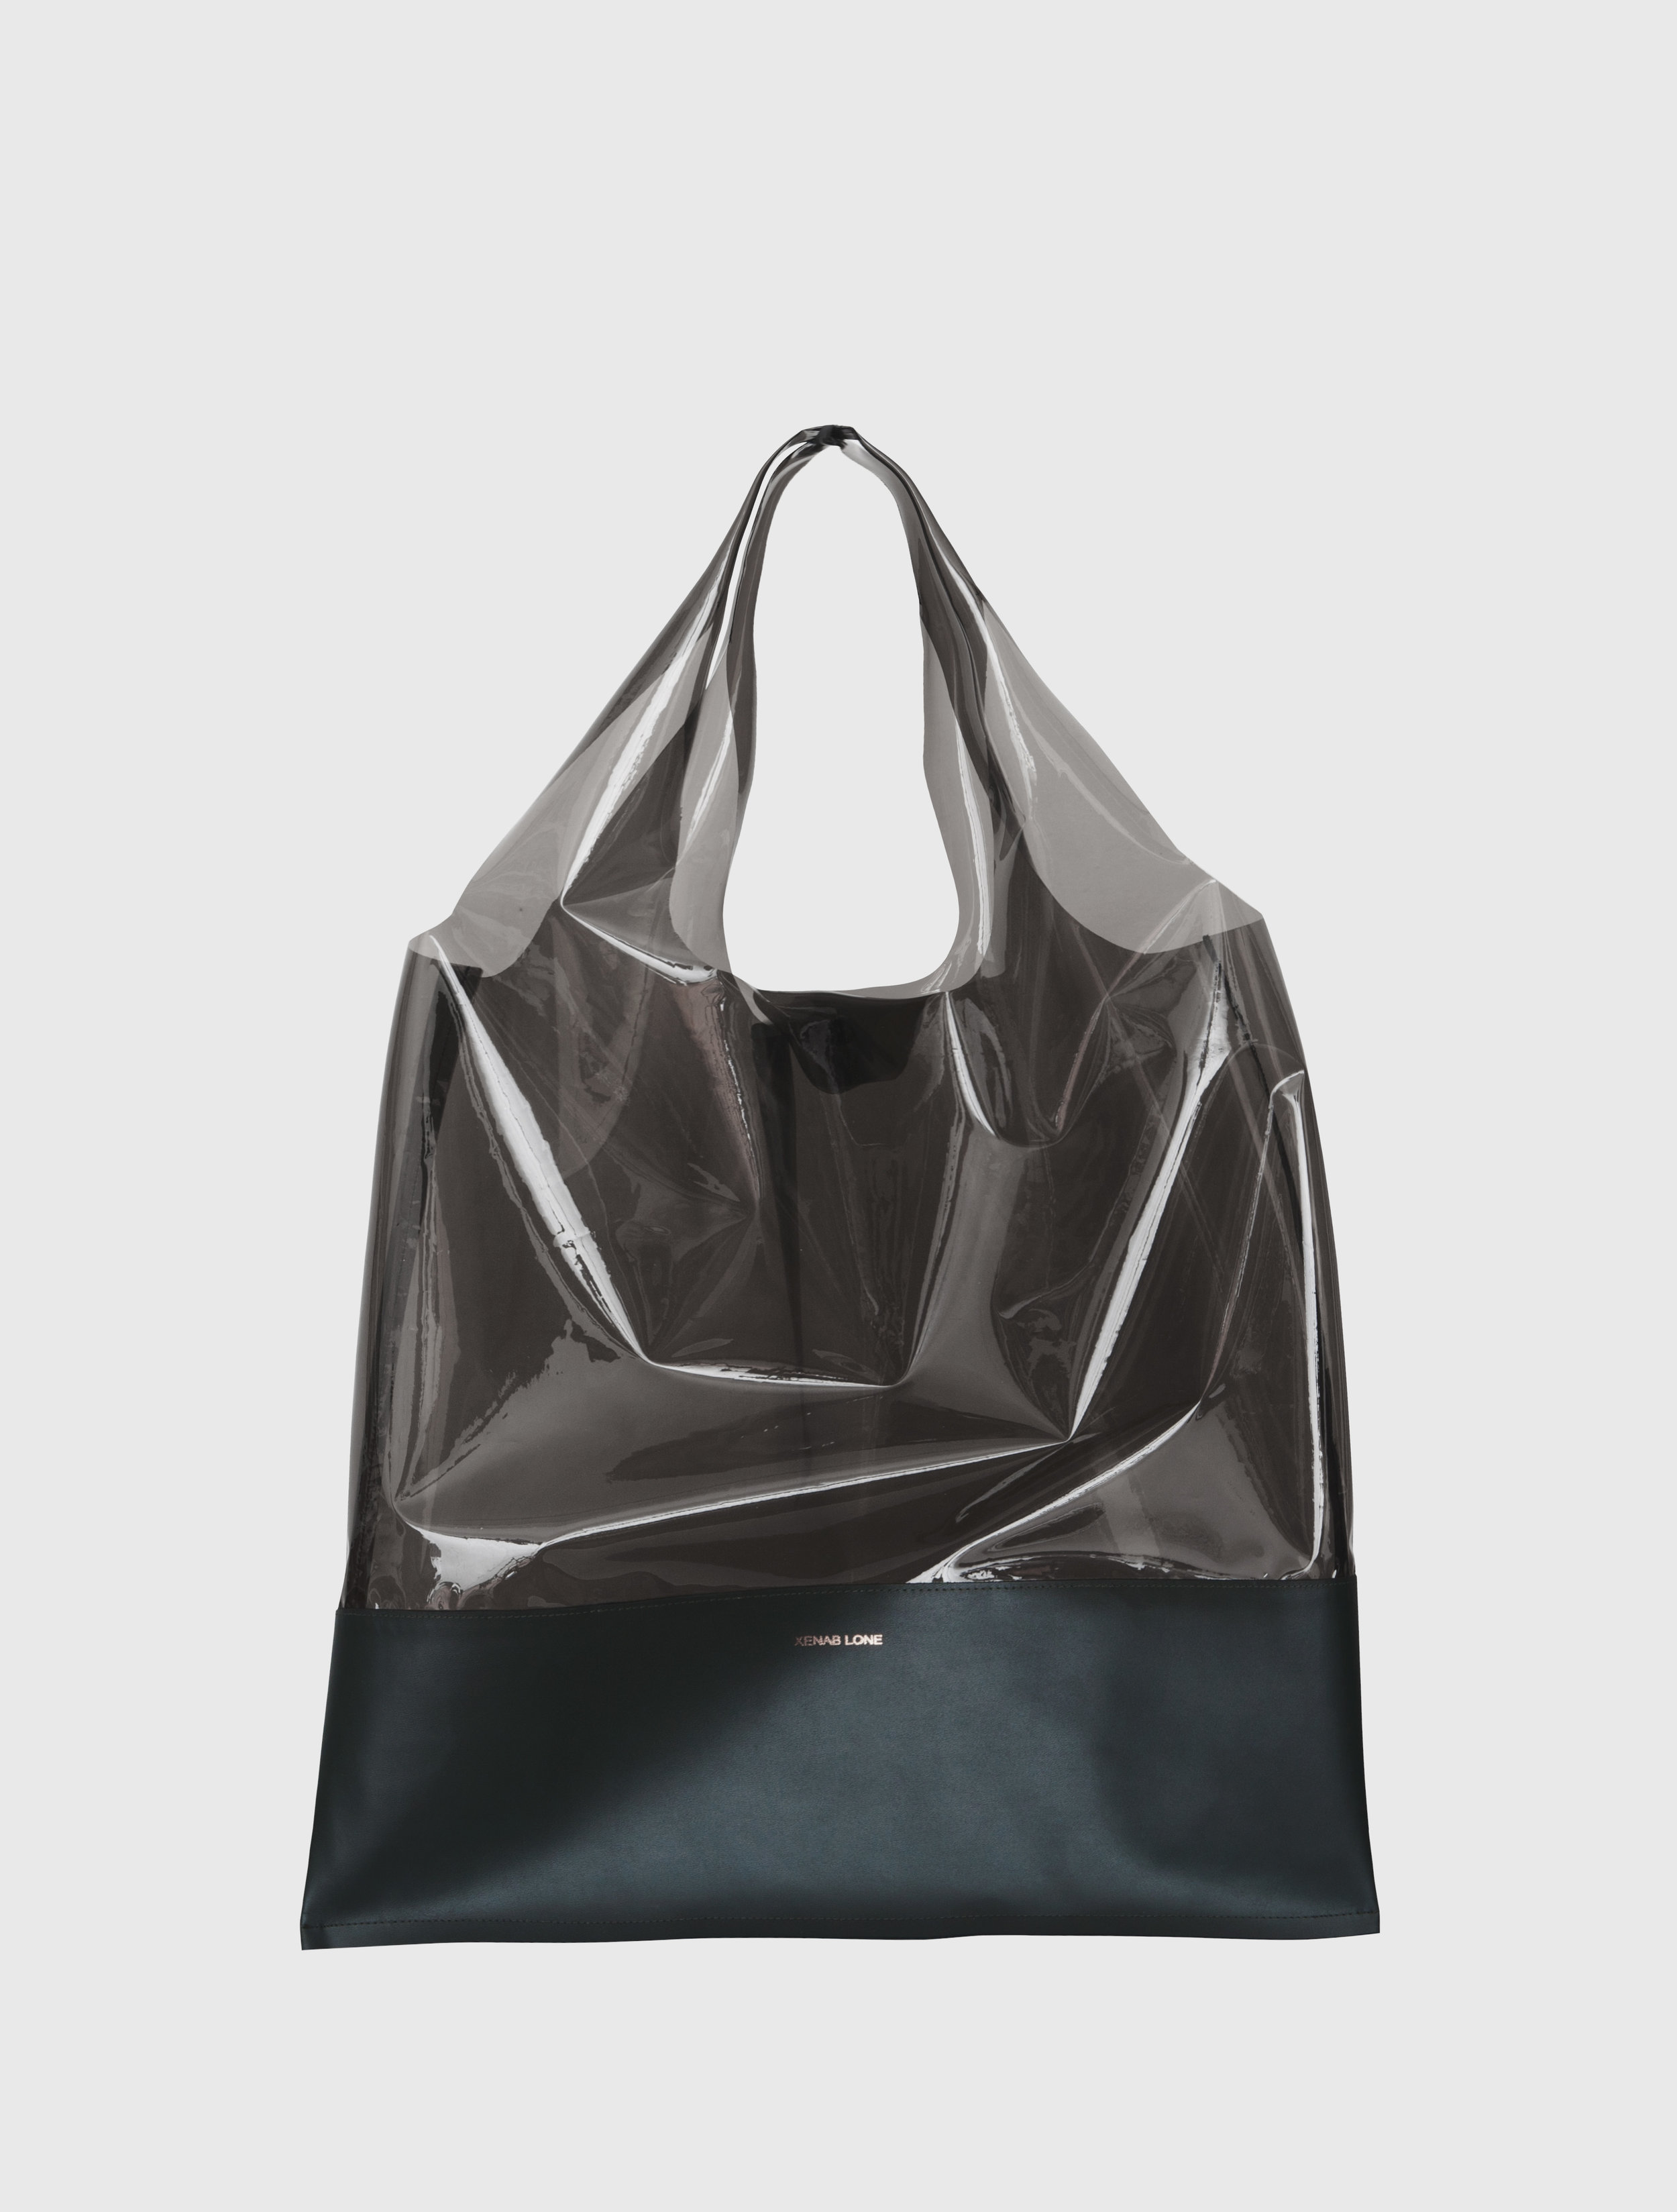 SHOPPER - ACETATE GREEN FRONT.jpg